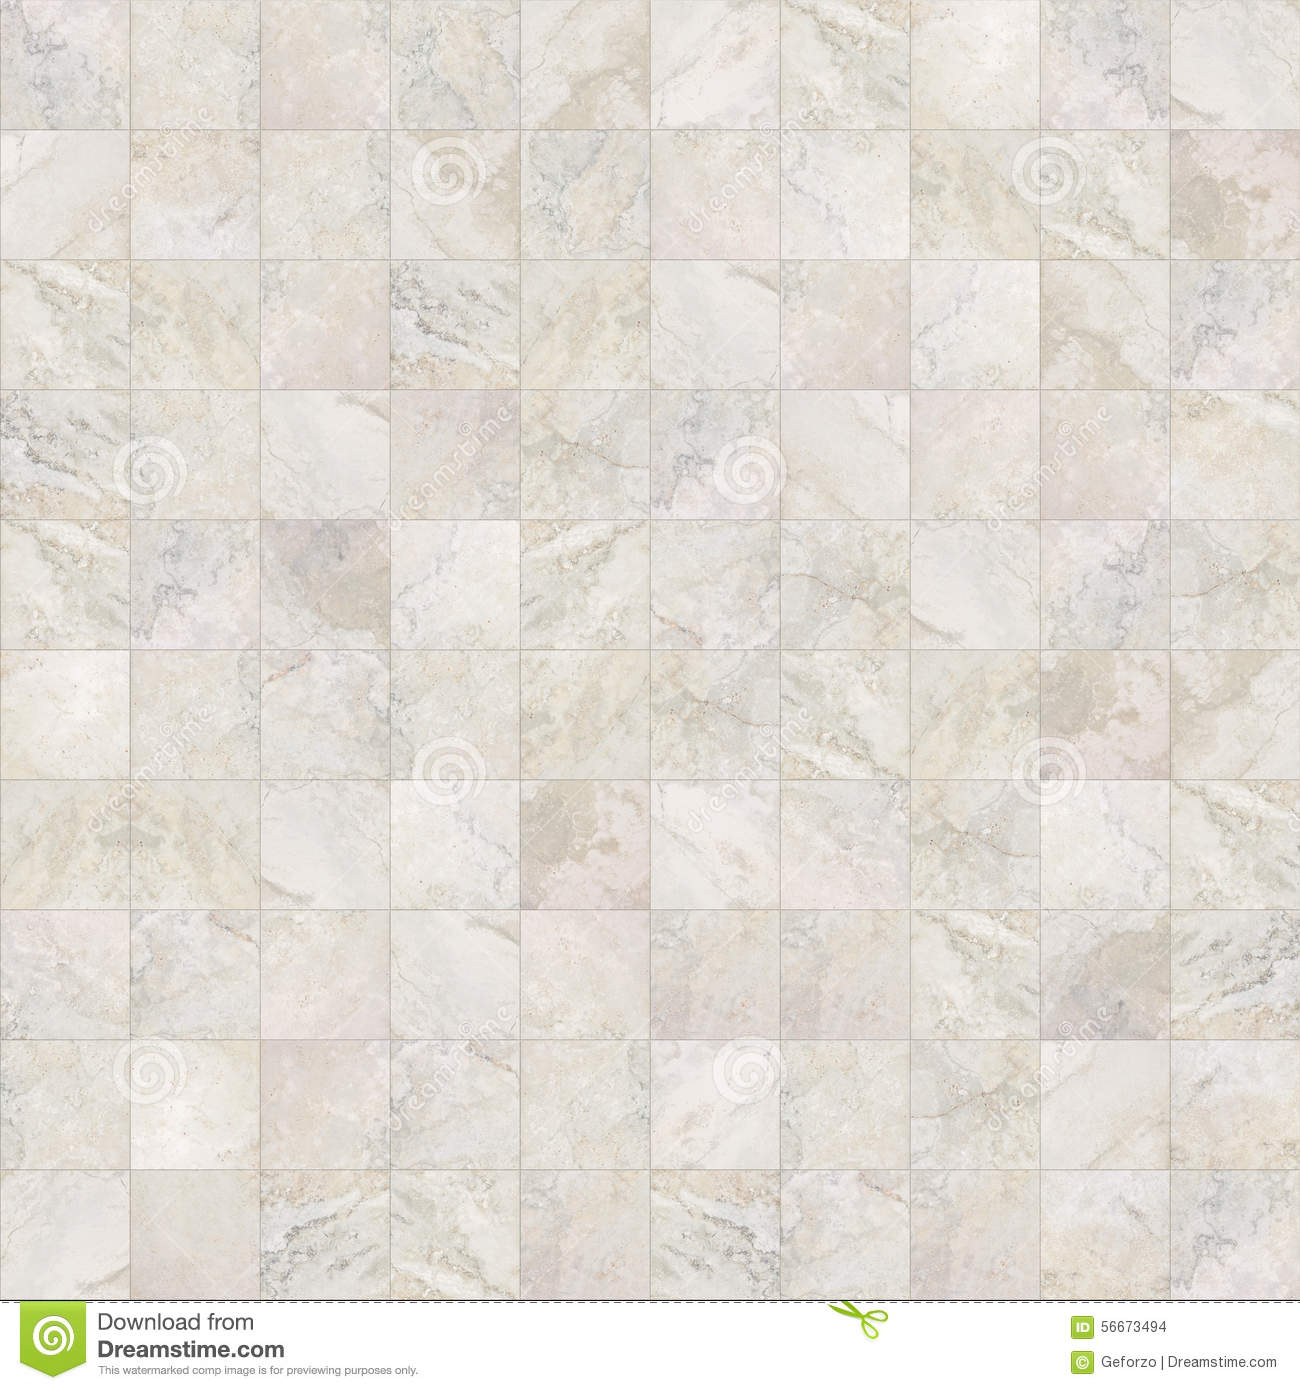 Interior Design Web App Square Seamless Marble Tiles Texture Stock Photo Image